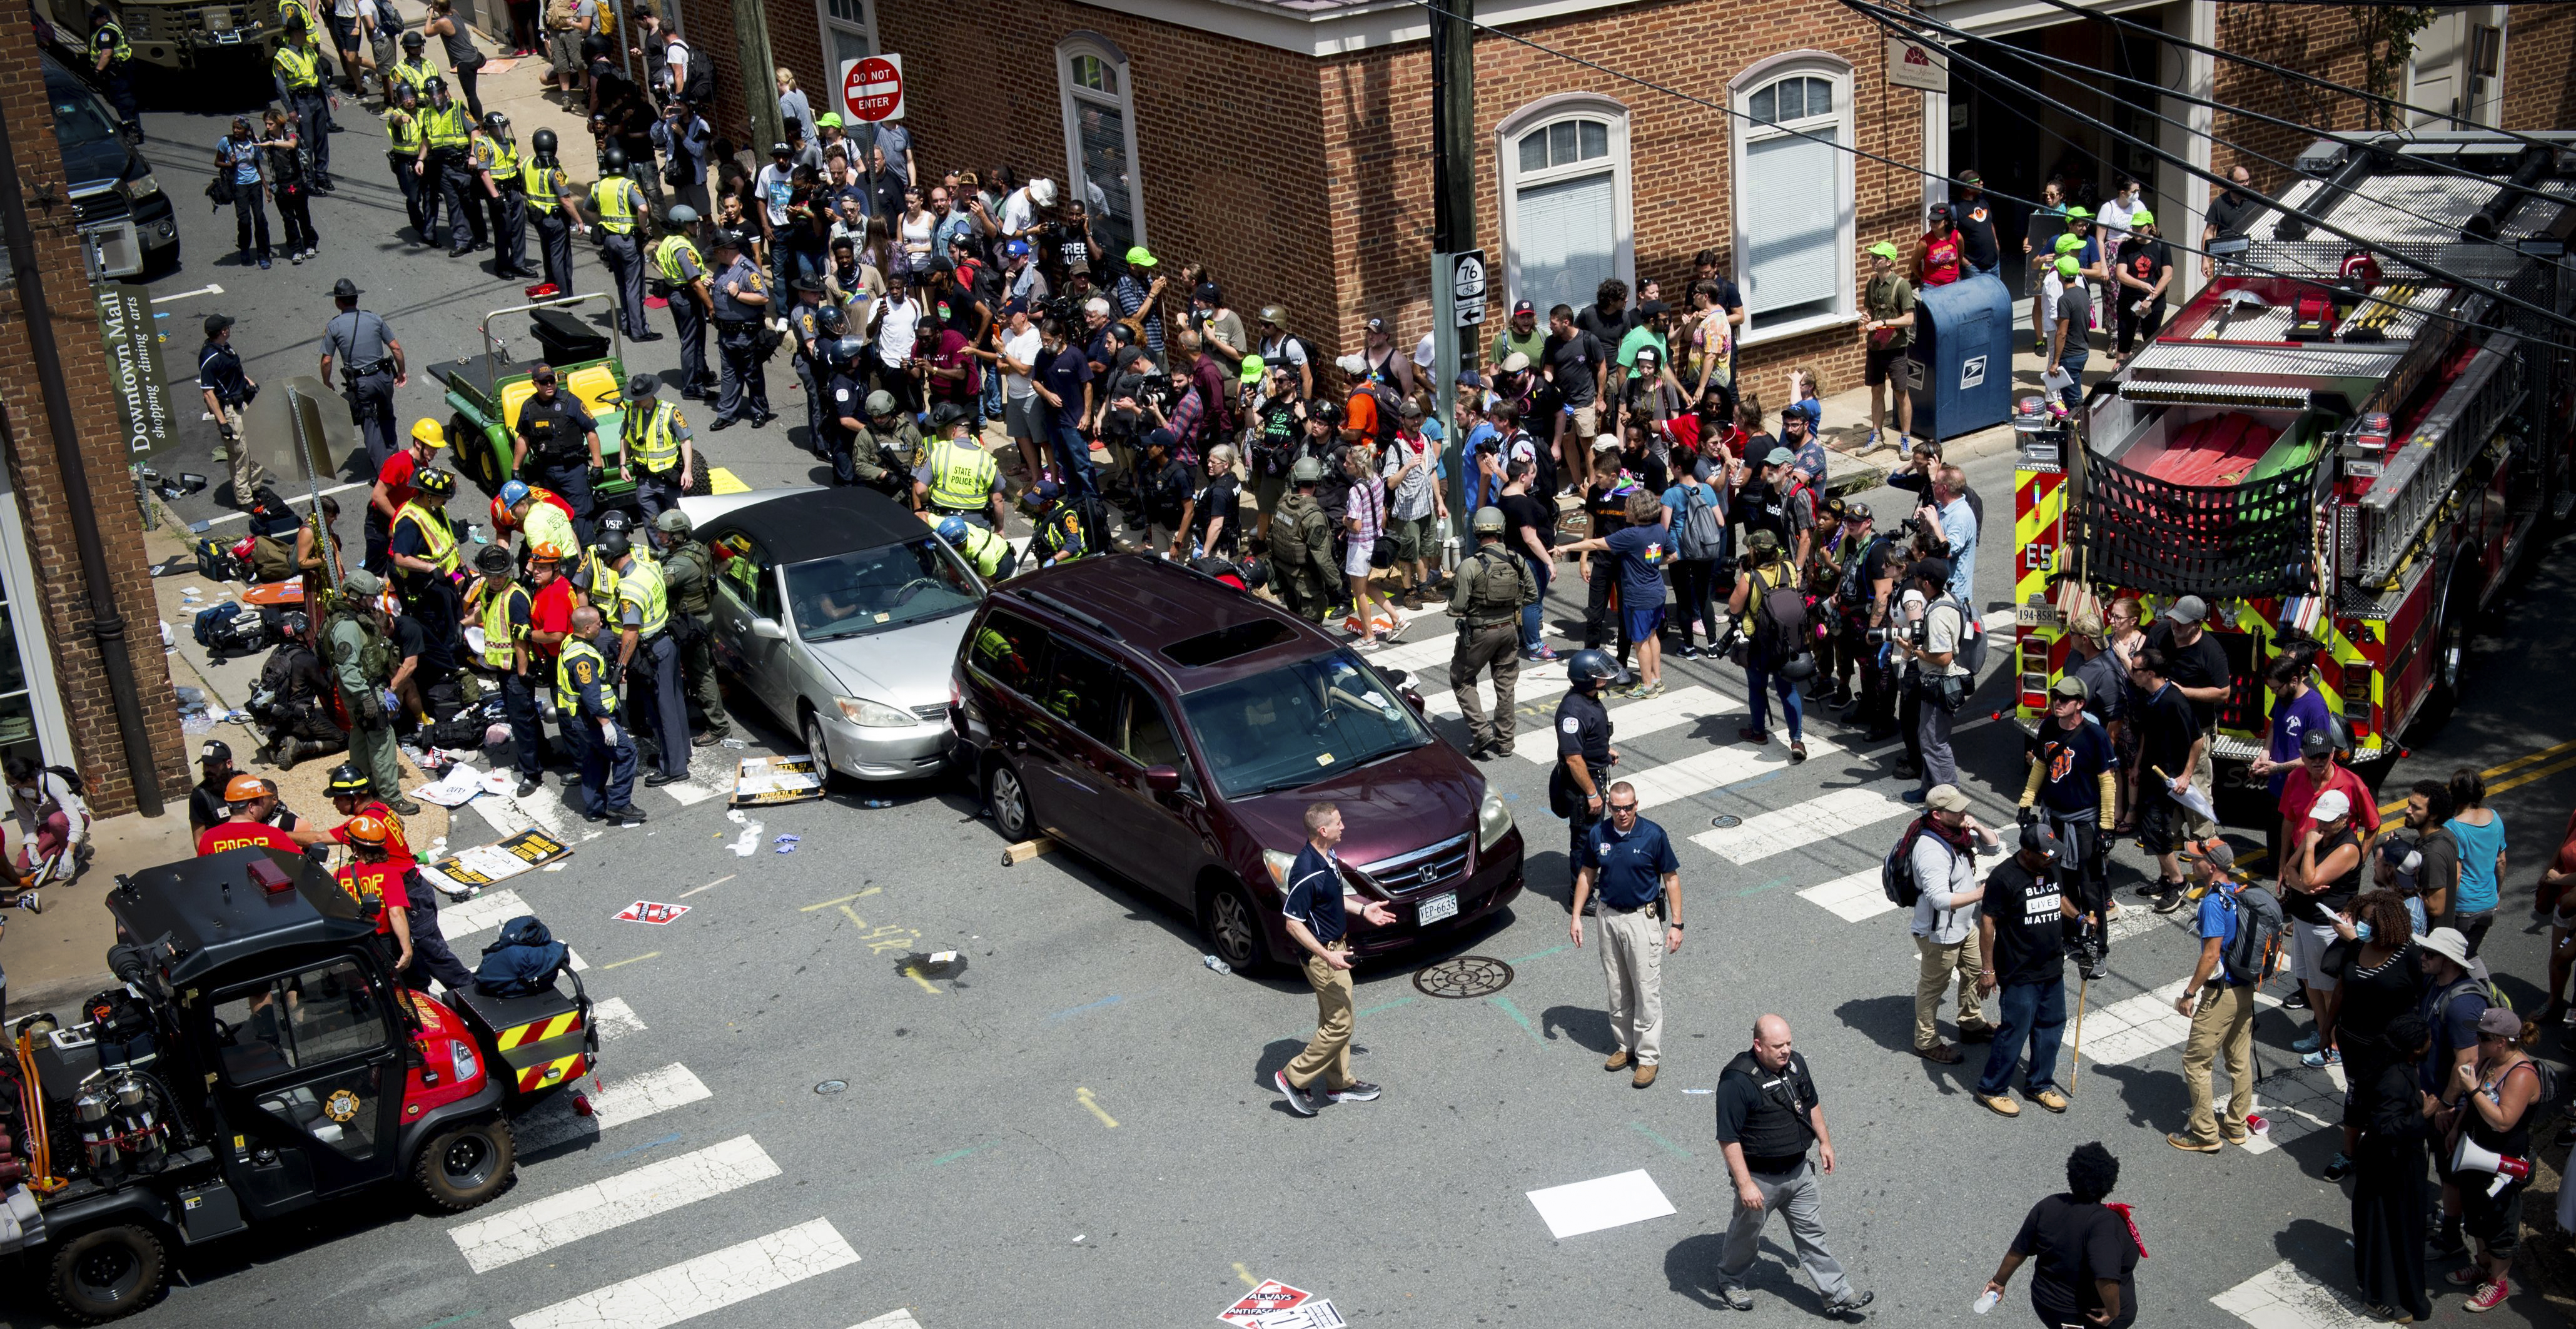 People receive first aid after a car ran into a crowd of protesters in Charlottesville, Virginia, on August 12, 2017.